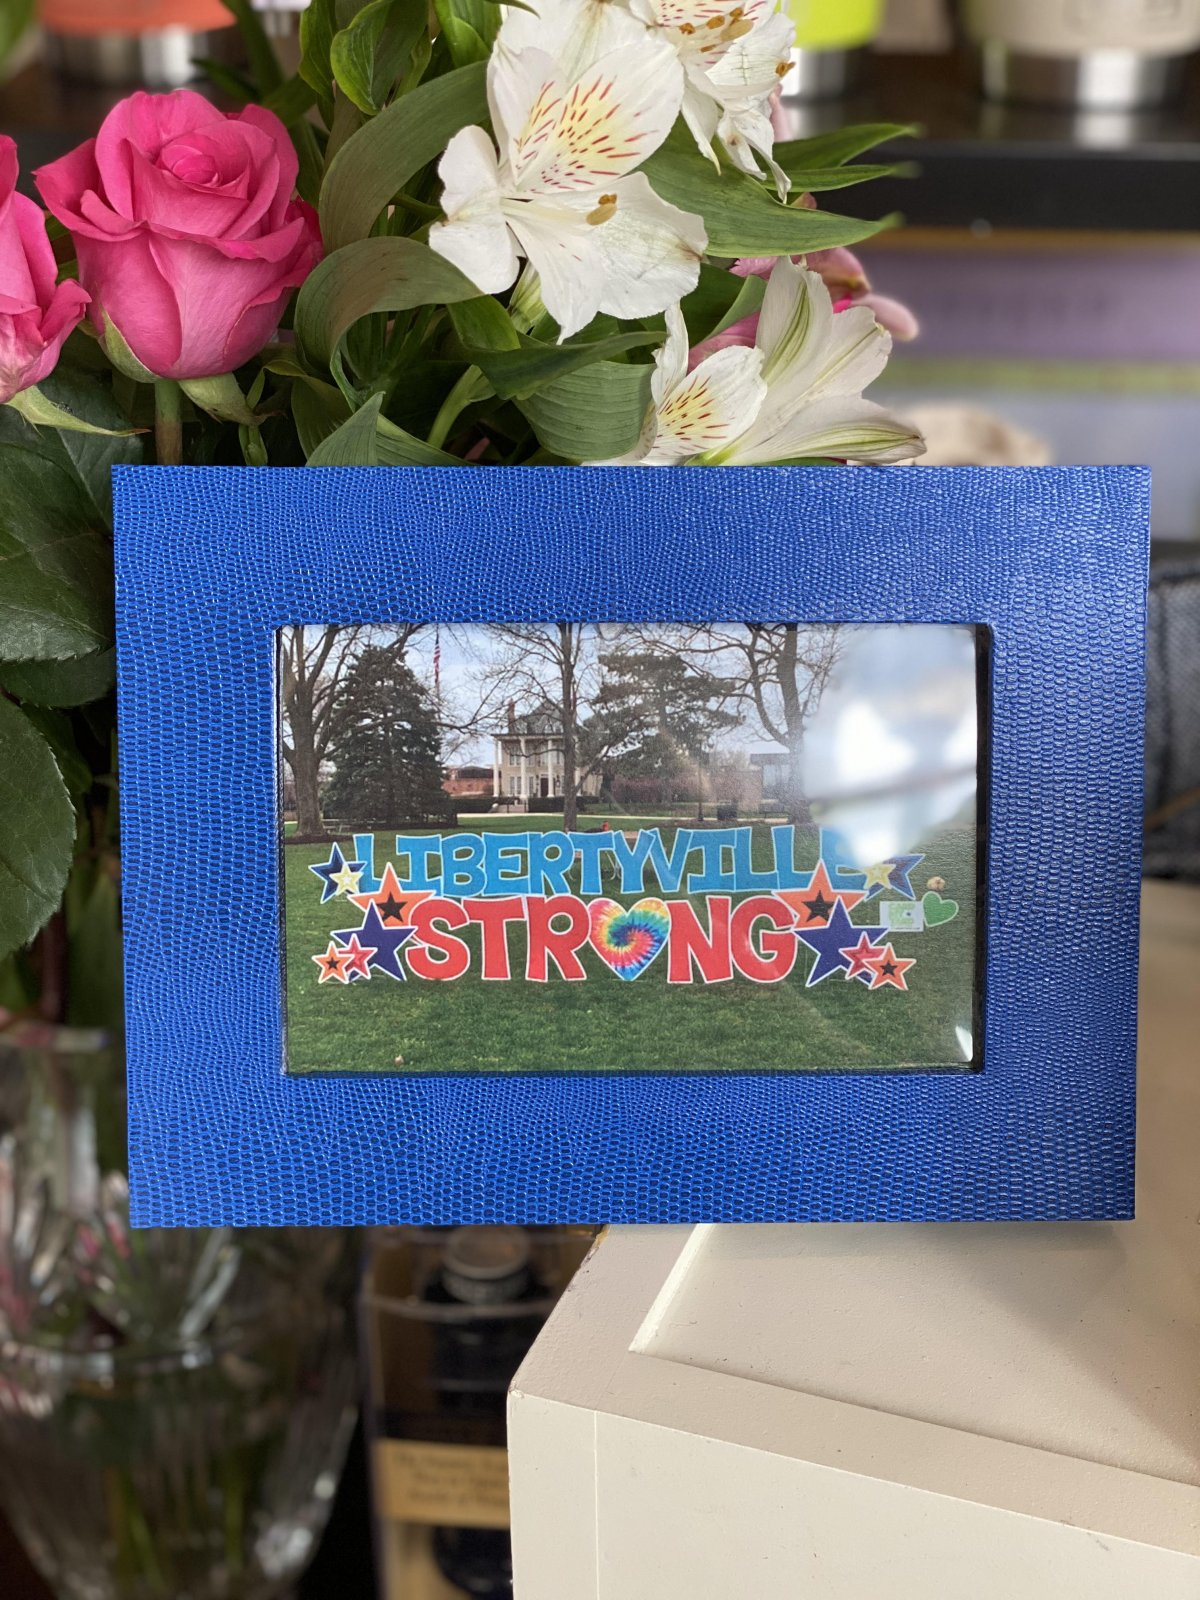 Libertyville Strong Gift Set - Pack of 5 Cards w/ Blue Frame